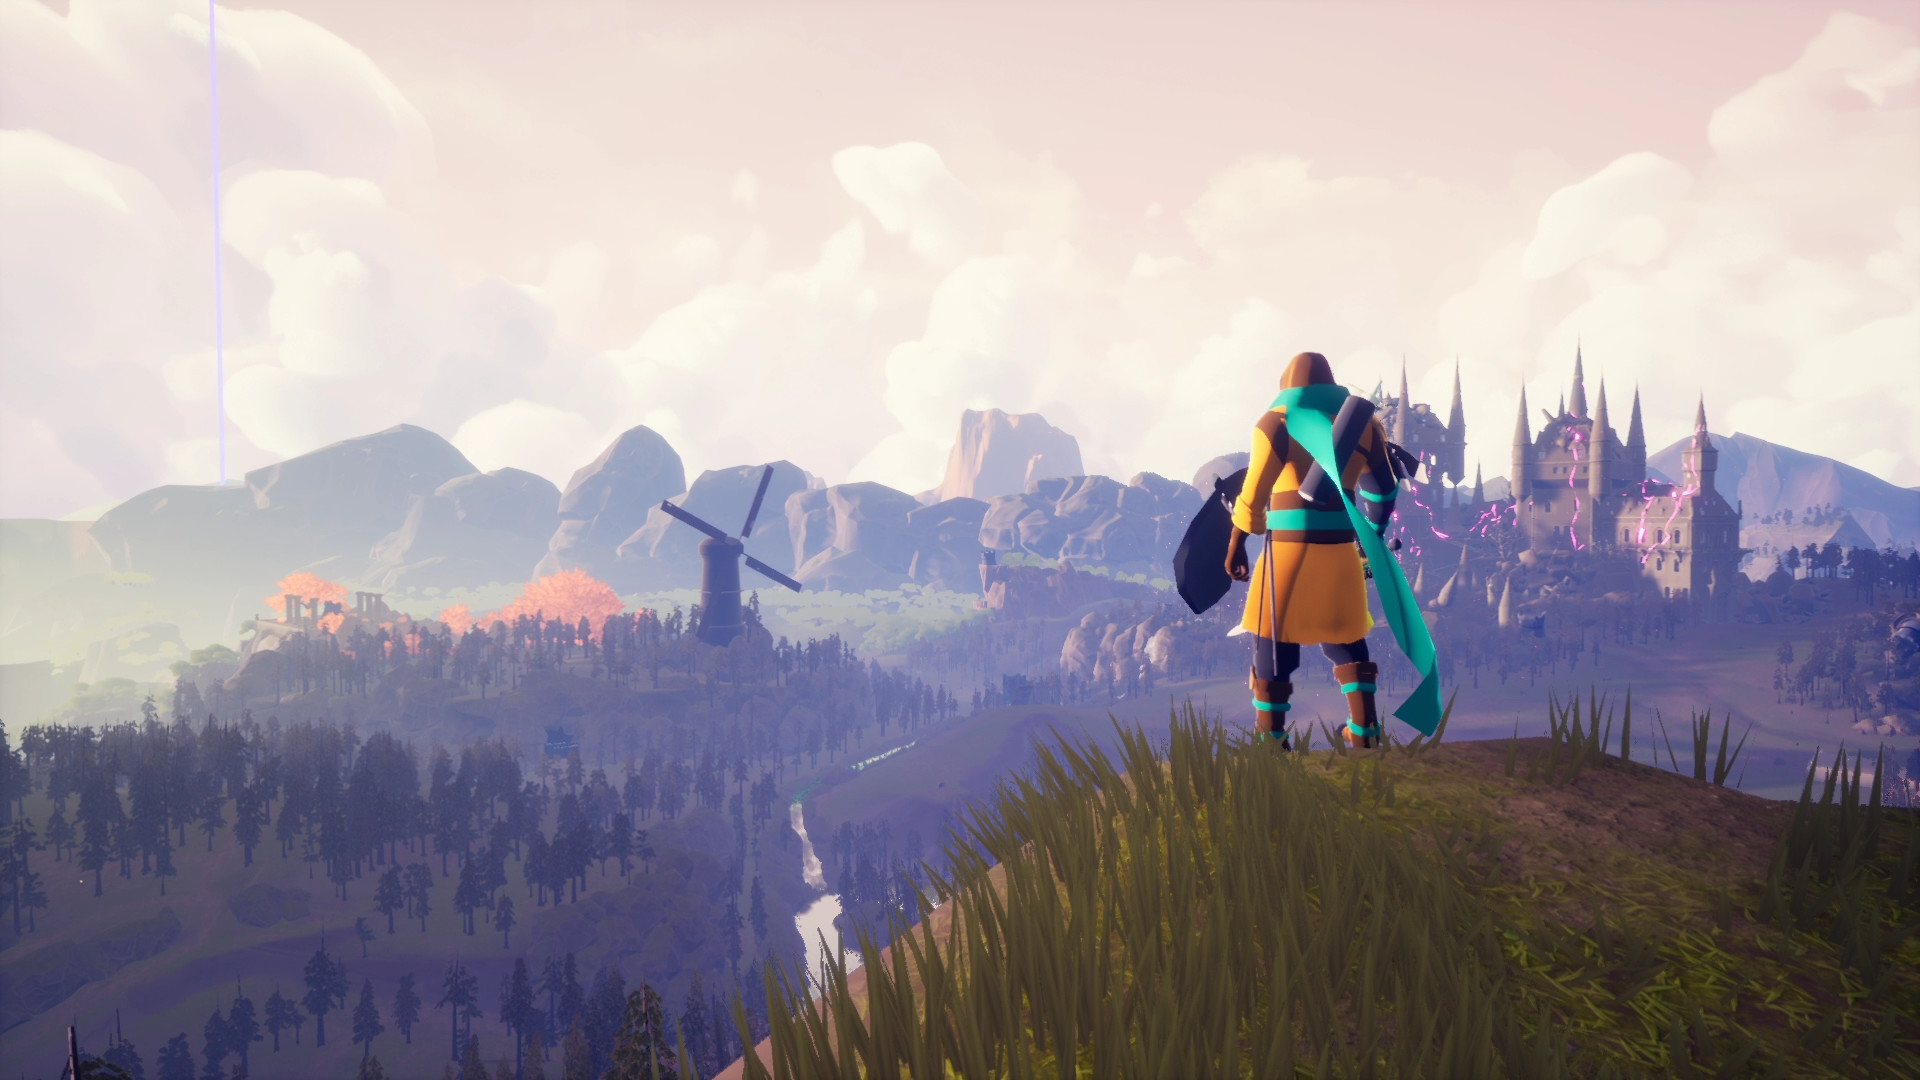 Hero is standing on a hilltop; there is a castle in the distance.